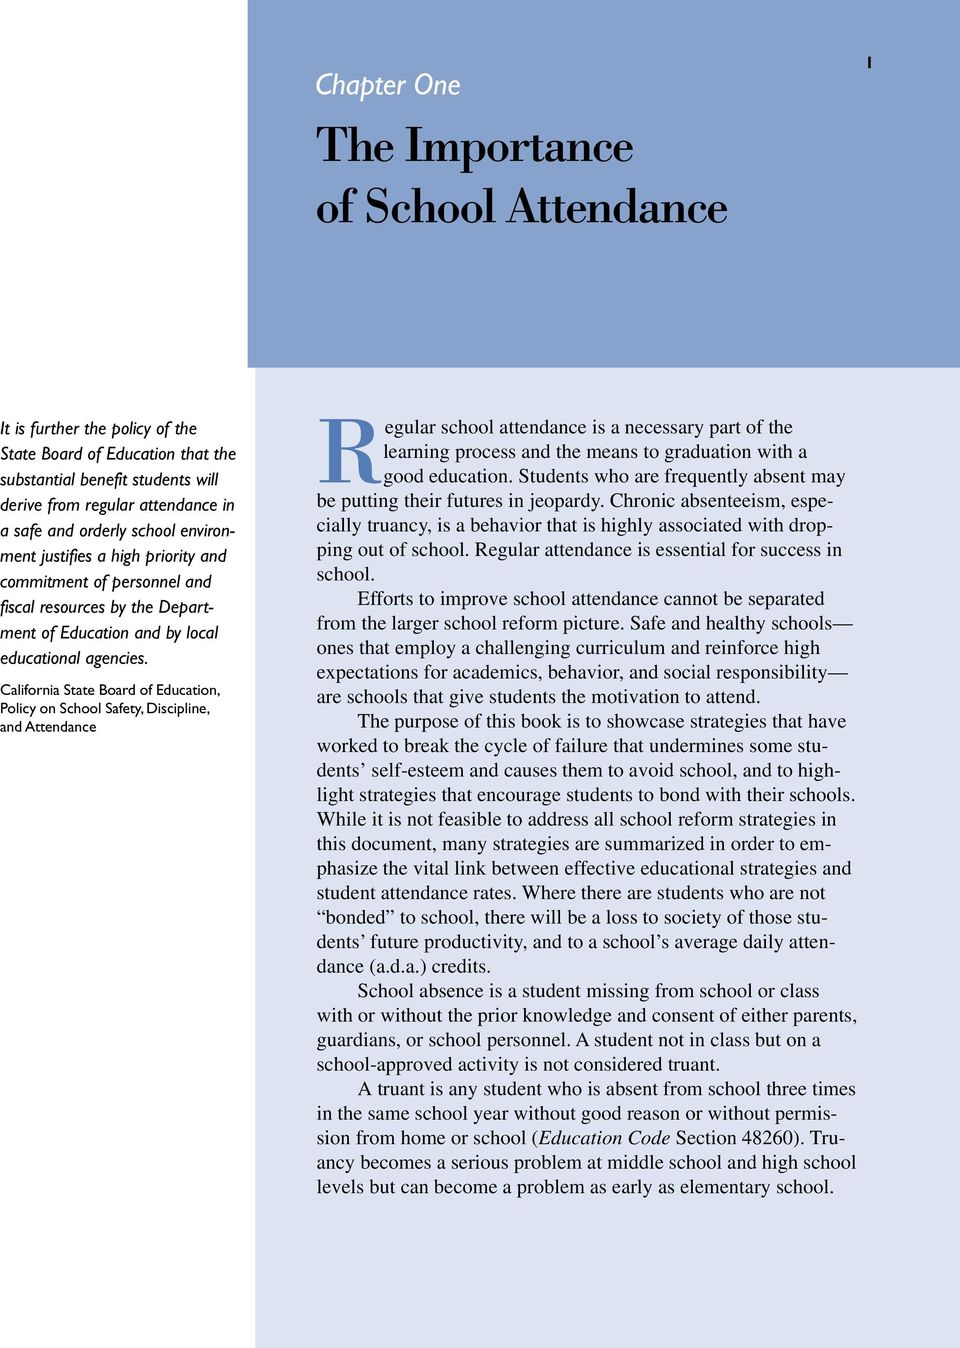 California State Board of Education, Policy on School Safety, Discipline, and Attendance Regular school attendance is a necessary part of the learning process and the means to graduation with a good